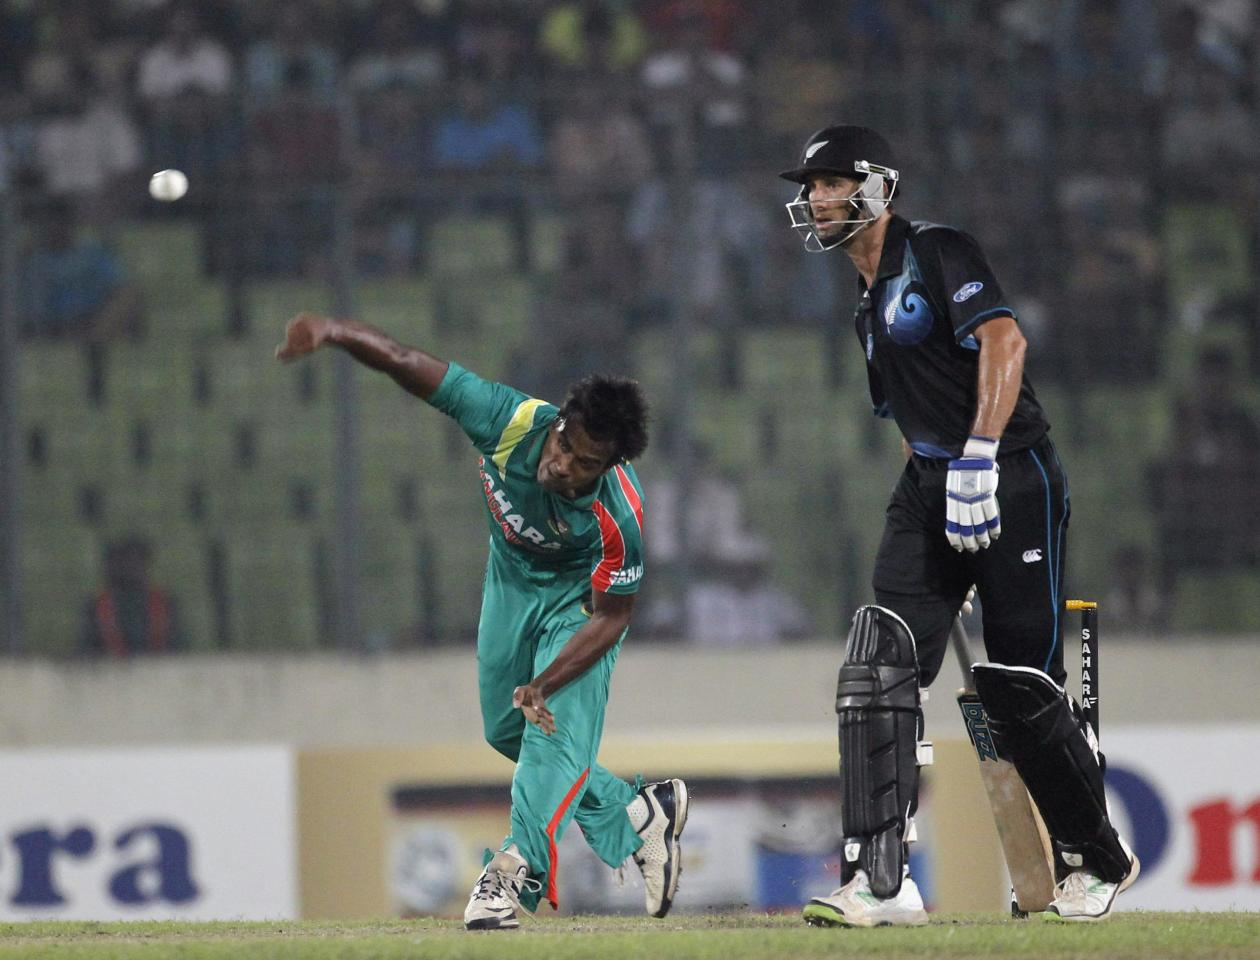 Bangladesh's Rubel Hossain bowls as New Zealand's Grant Elliott watches during their second one-day international (ODI) cricket match in Dhaka October 31, 2013. REUTERS/Andrew Biraj (BANGLADESH - Tags: SPORT CRICKET)